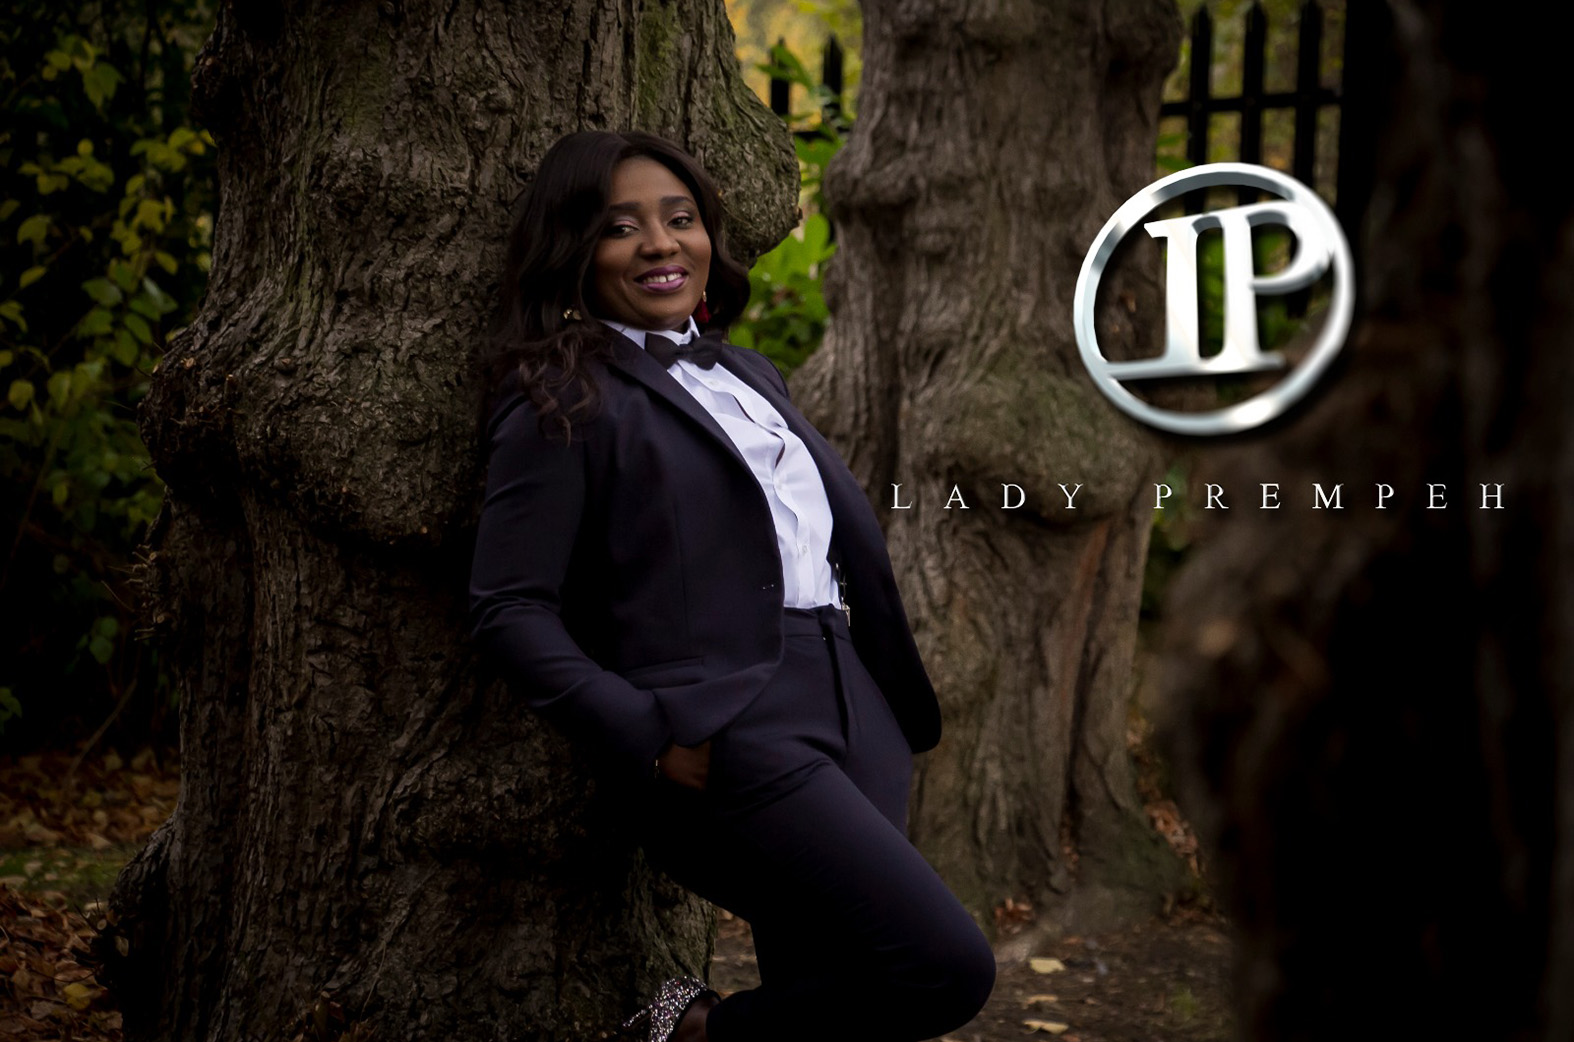 Lady Prempeh makes a major come back